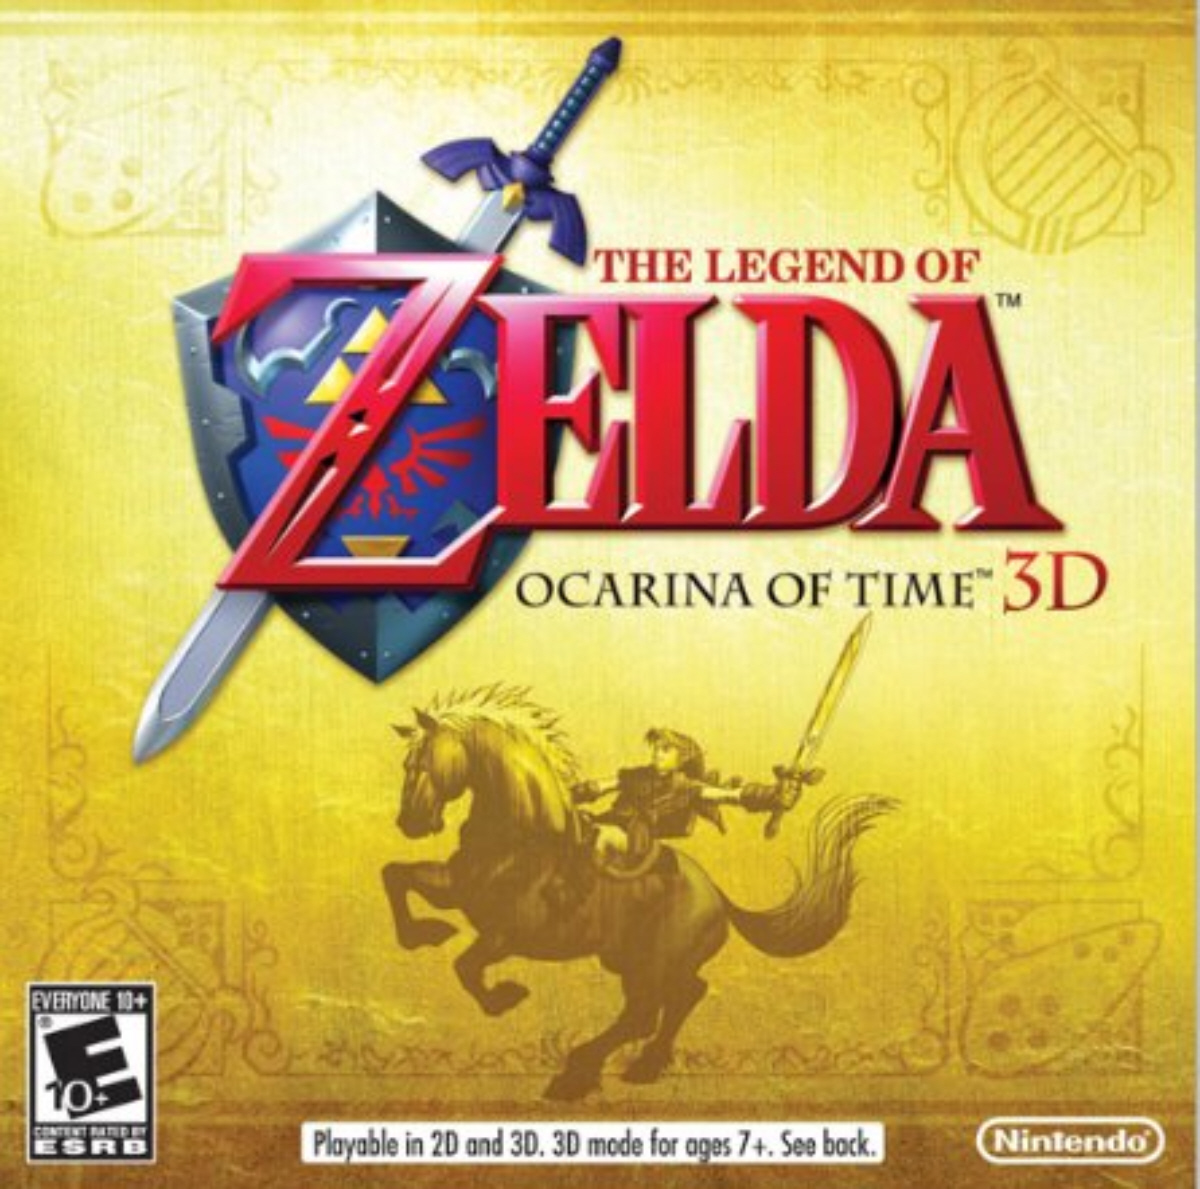 Review | Zelda: Ocarina of Time